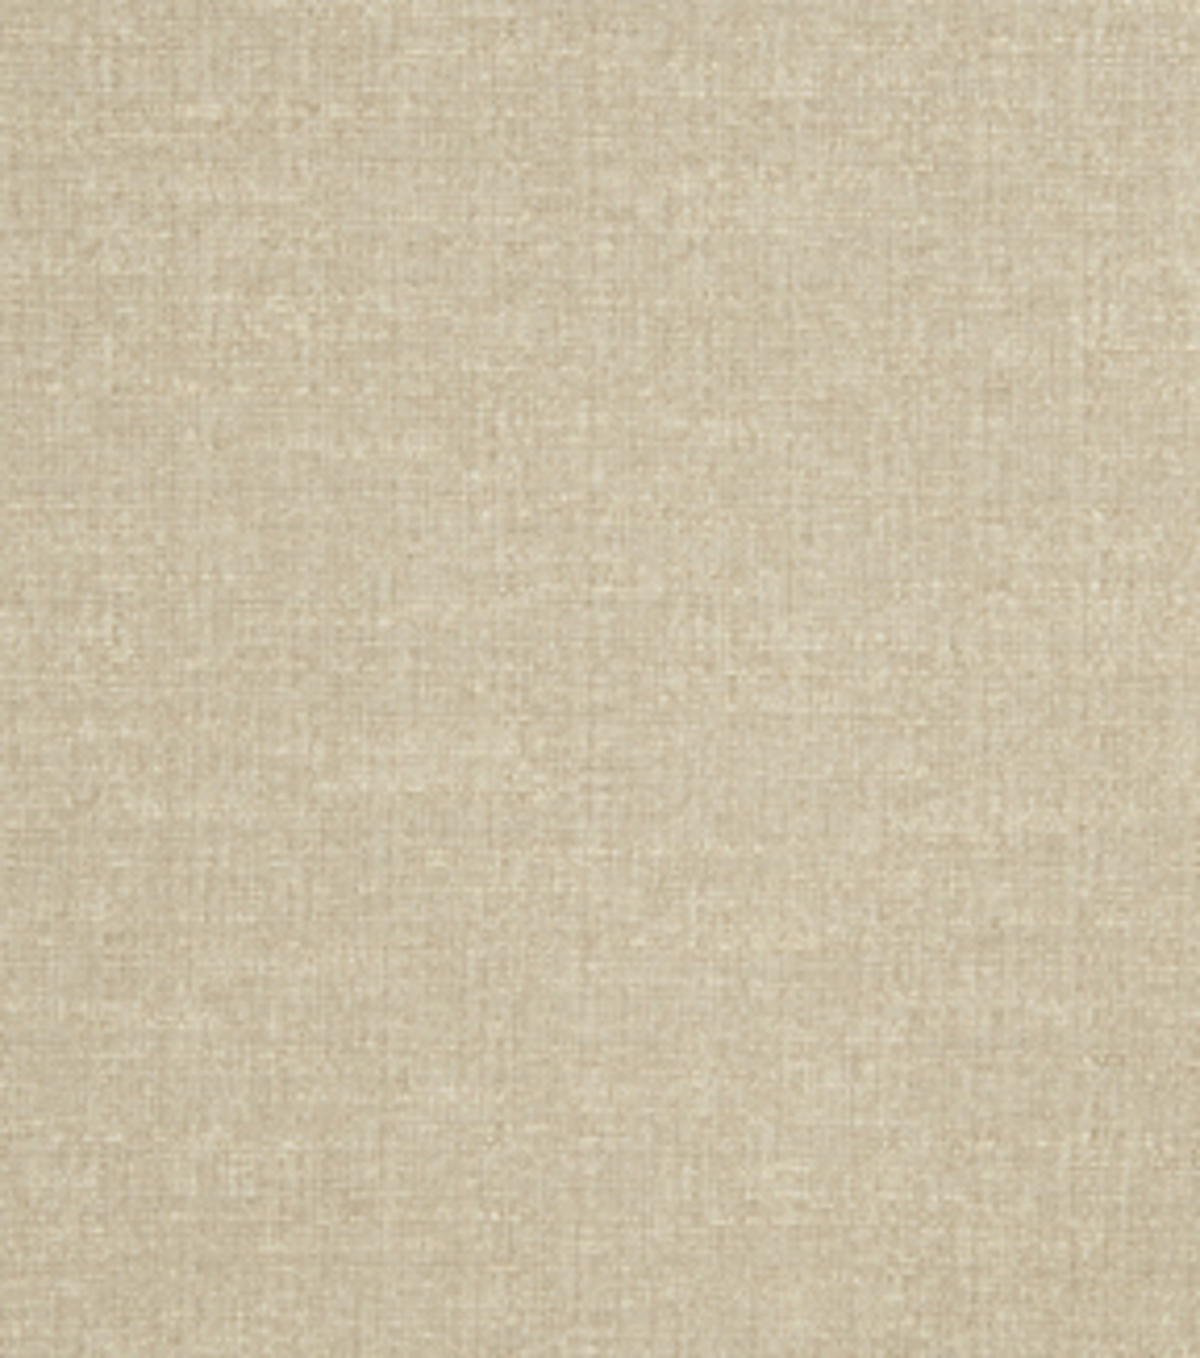 Home Decor 8\u0022x8\u0022 Fabric Swatch-Signature Series Texture Barley